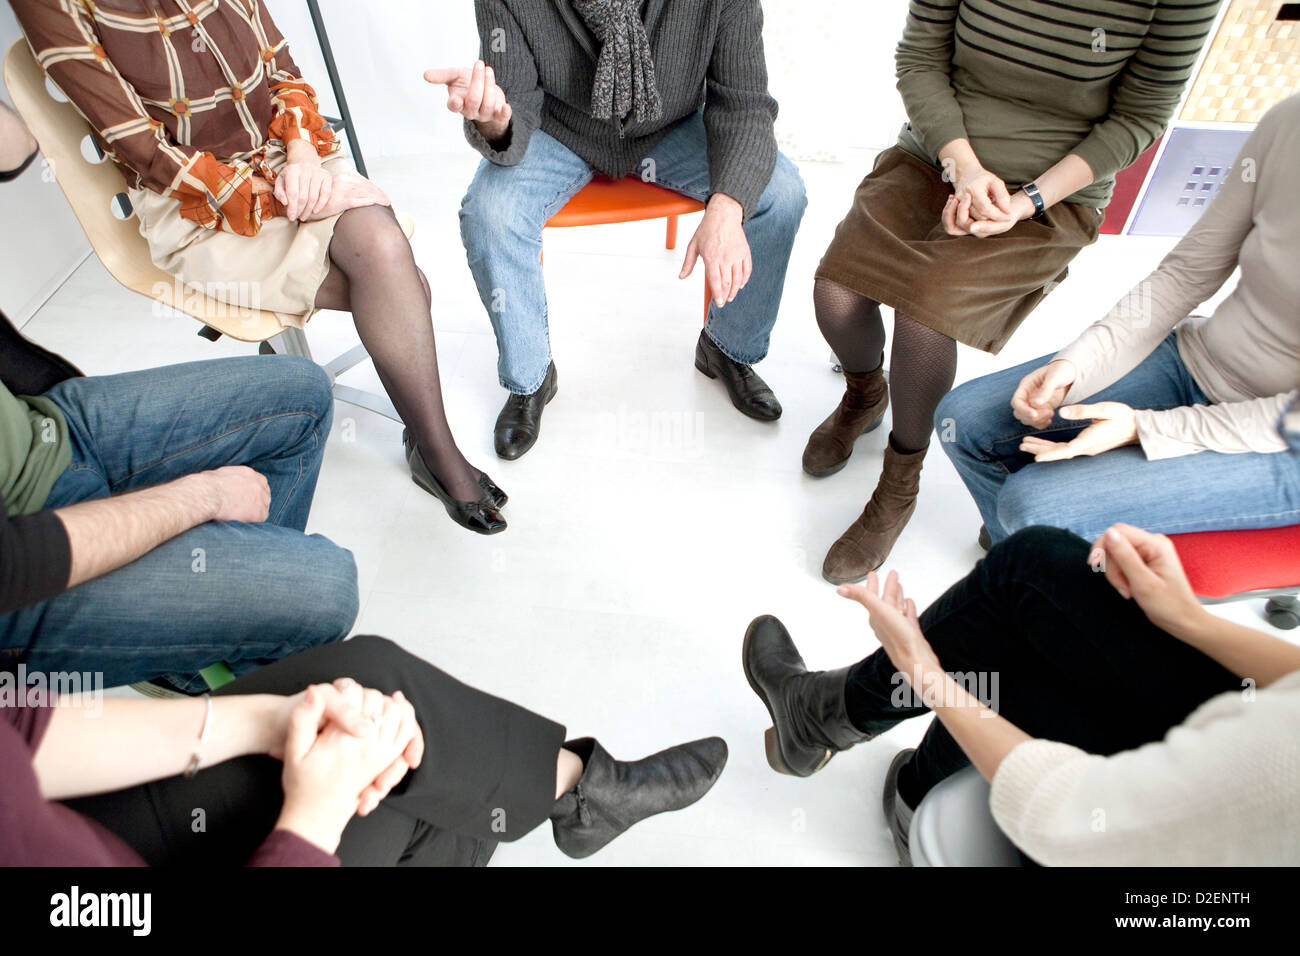 GROUP THERAPY - Stock Image